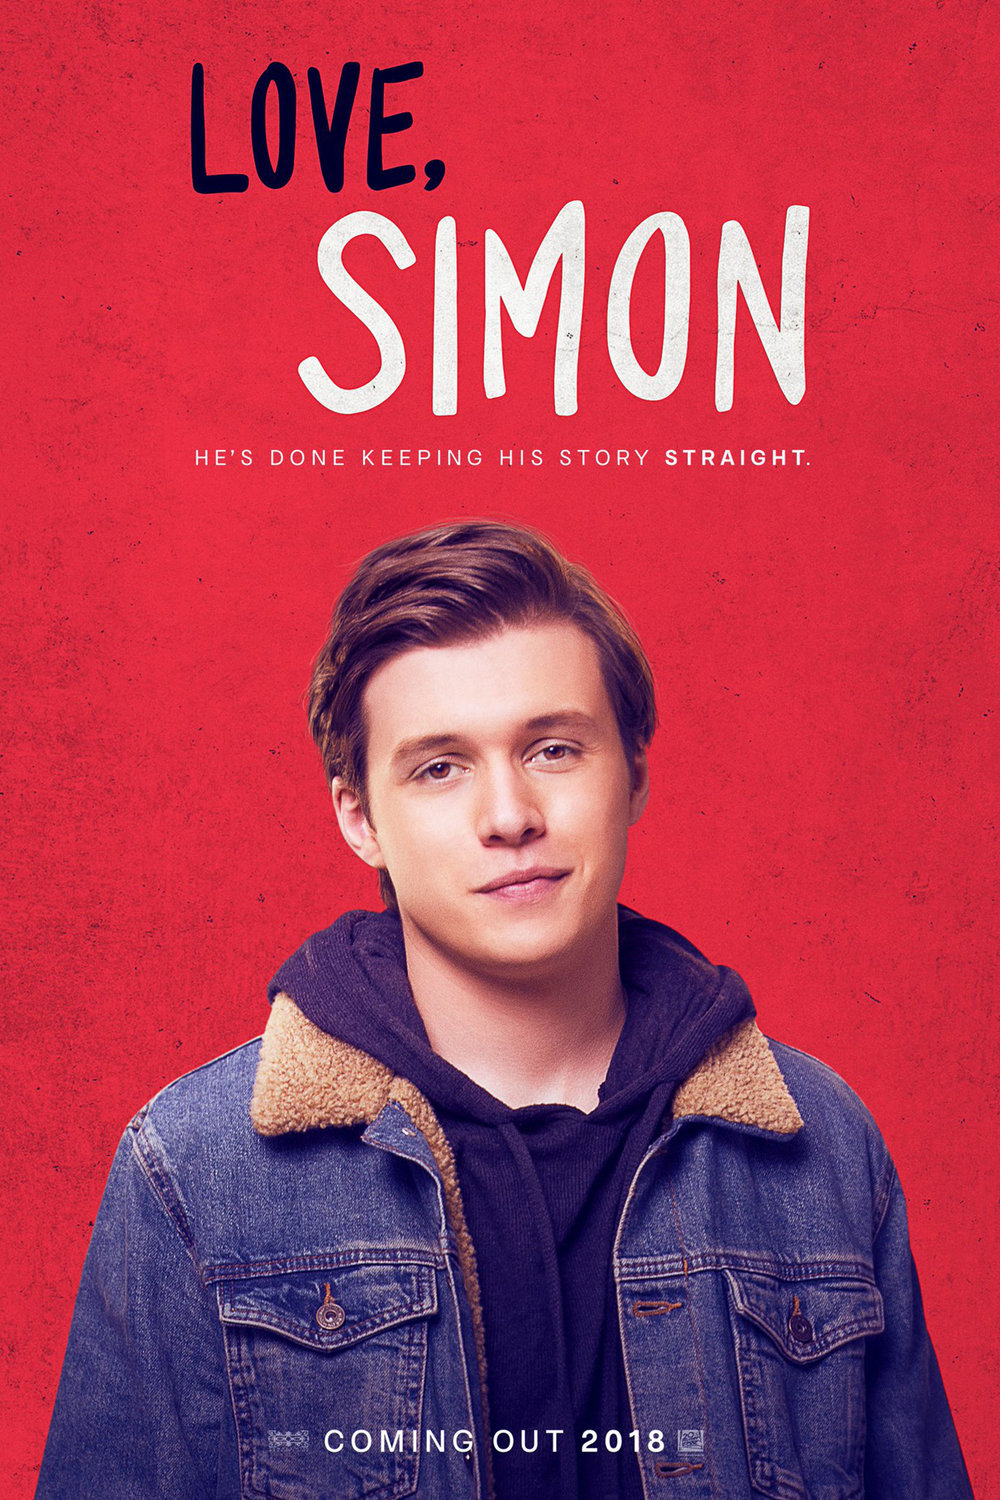 Love, Simon   (2018) dir. Greg Berlanti Rated: PG-13 image: ©2018  20th Century Fox